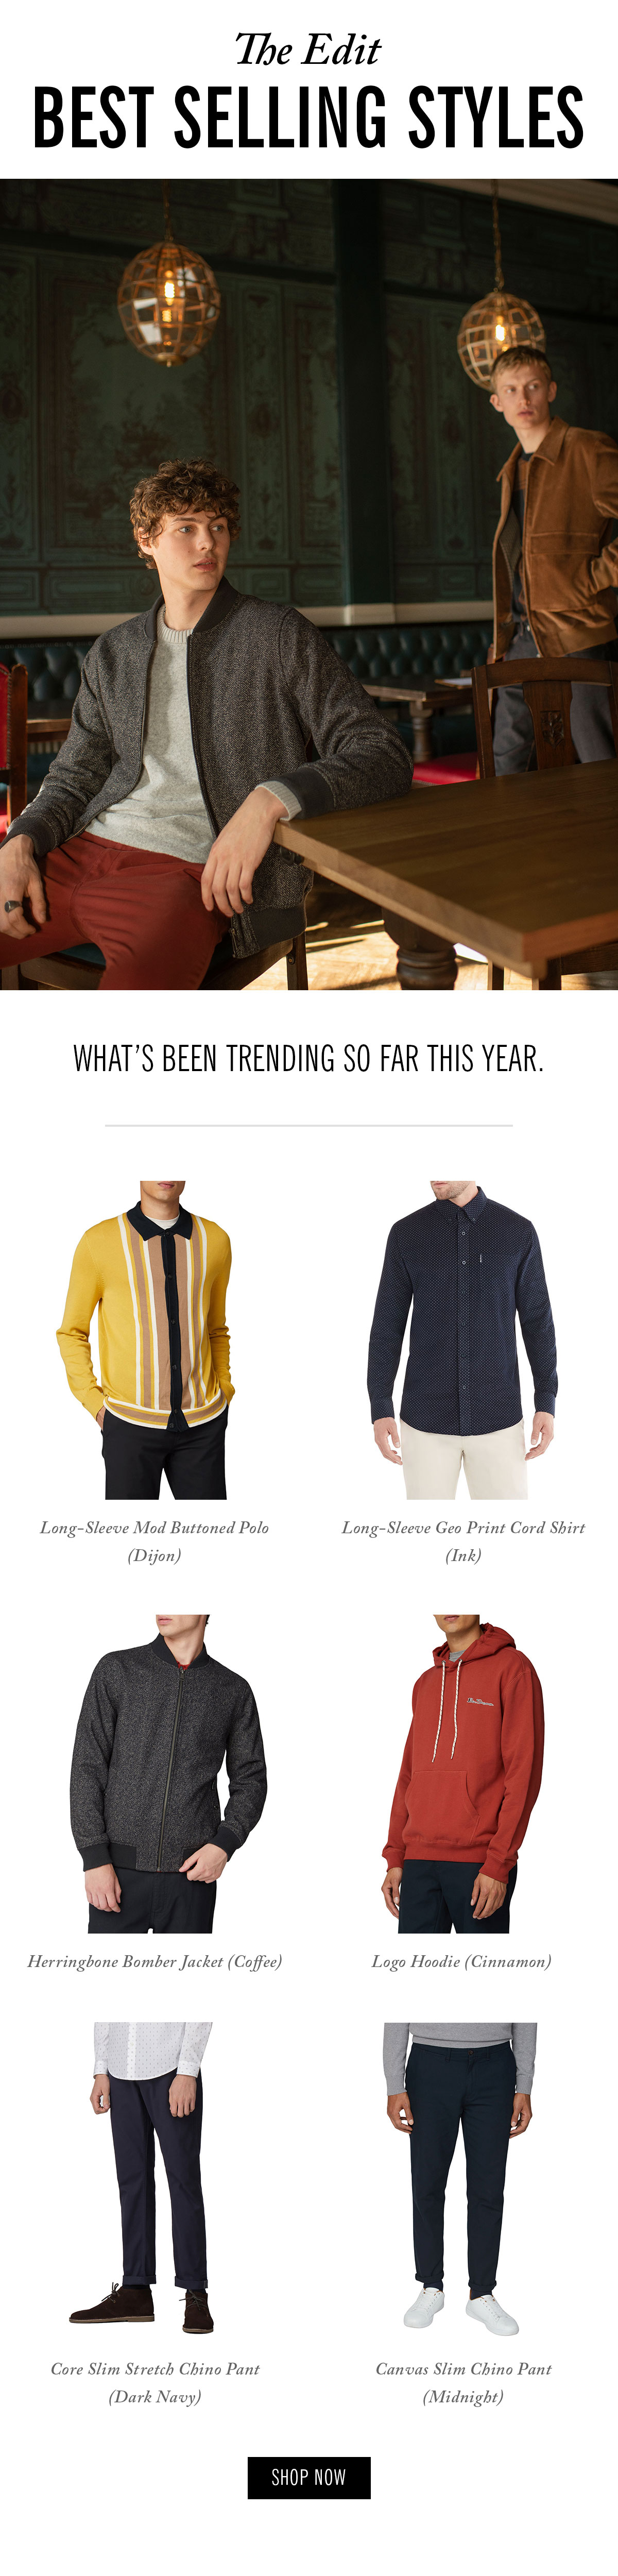 Best-selling styles | What's been trending so far this year